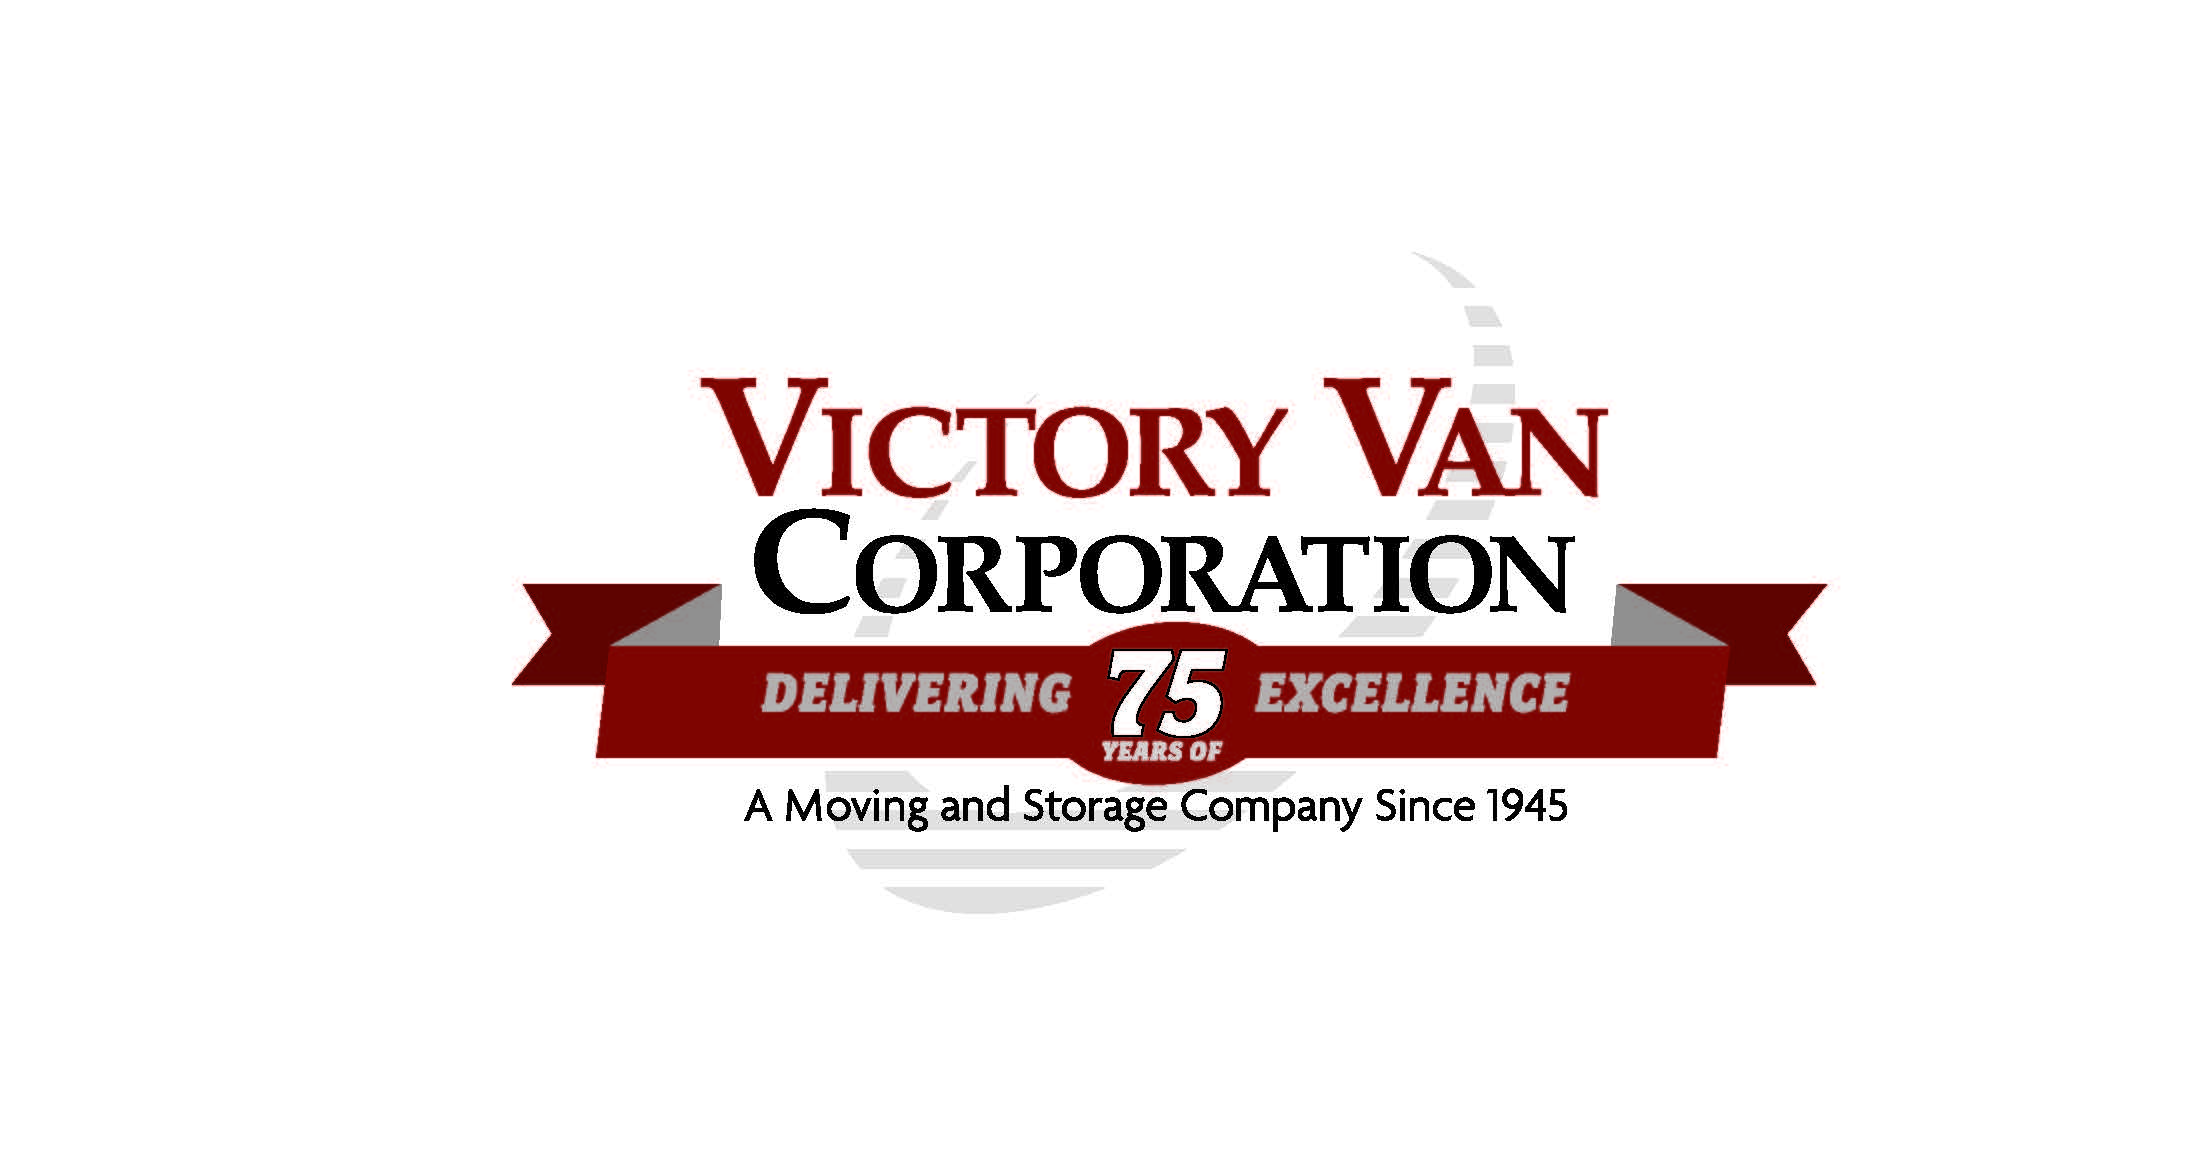 Celebrating Victory Van's 75th Anniversary